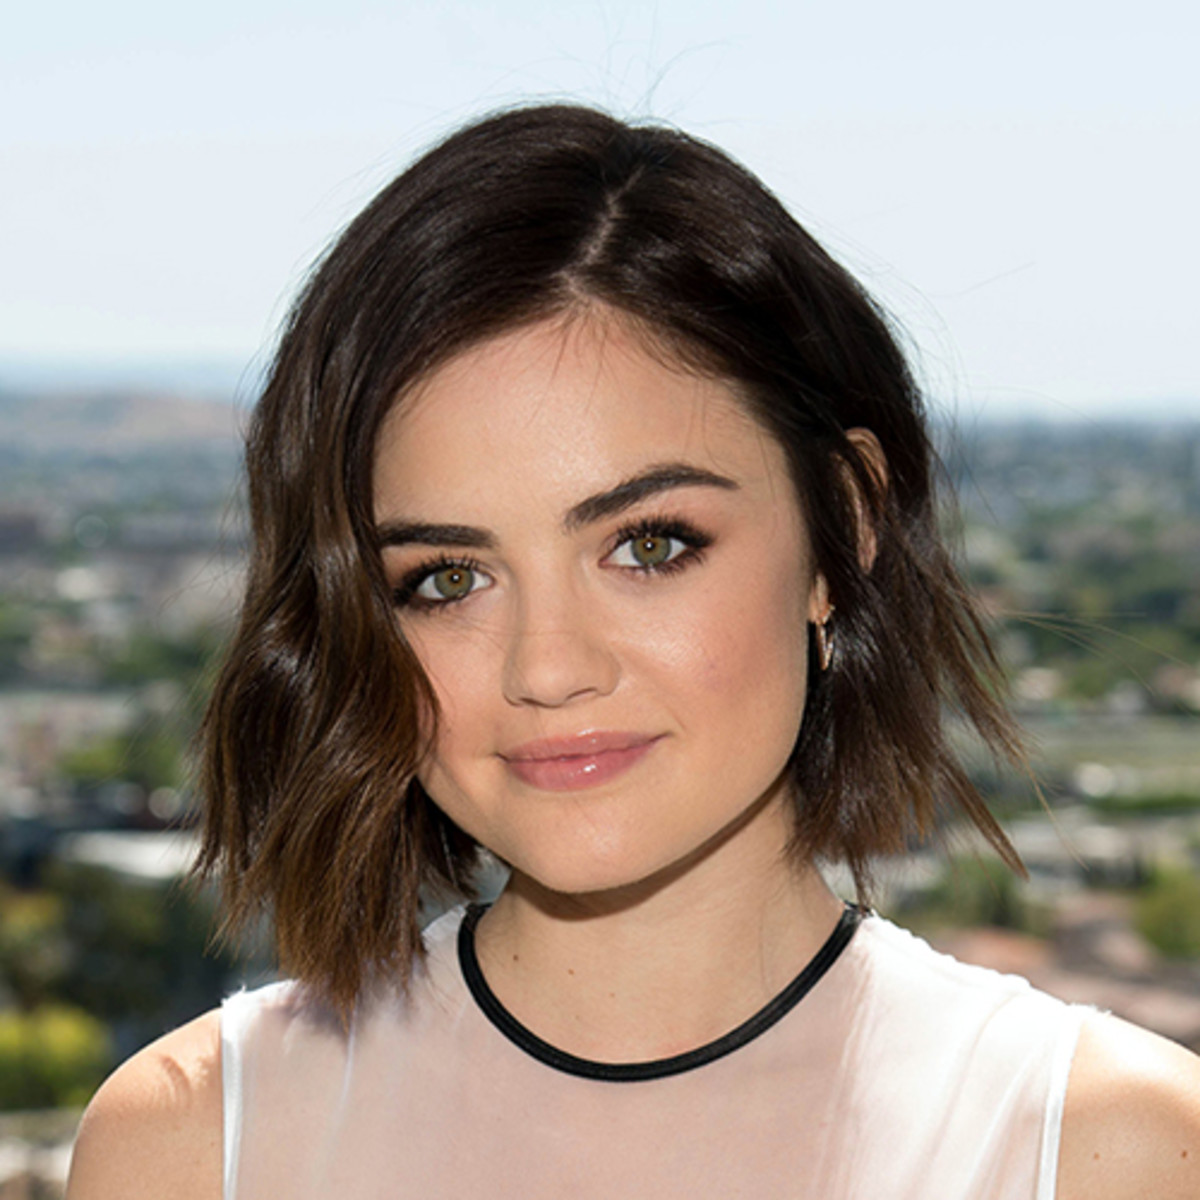 Fotos Lucy Hale nude (78 photos), Tits, Cleavage, Selfie, cleavage 2018